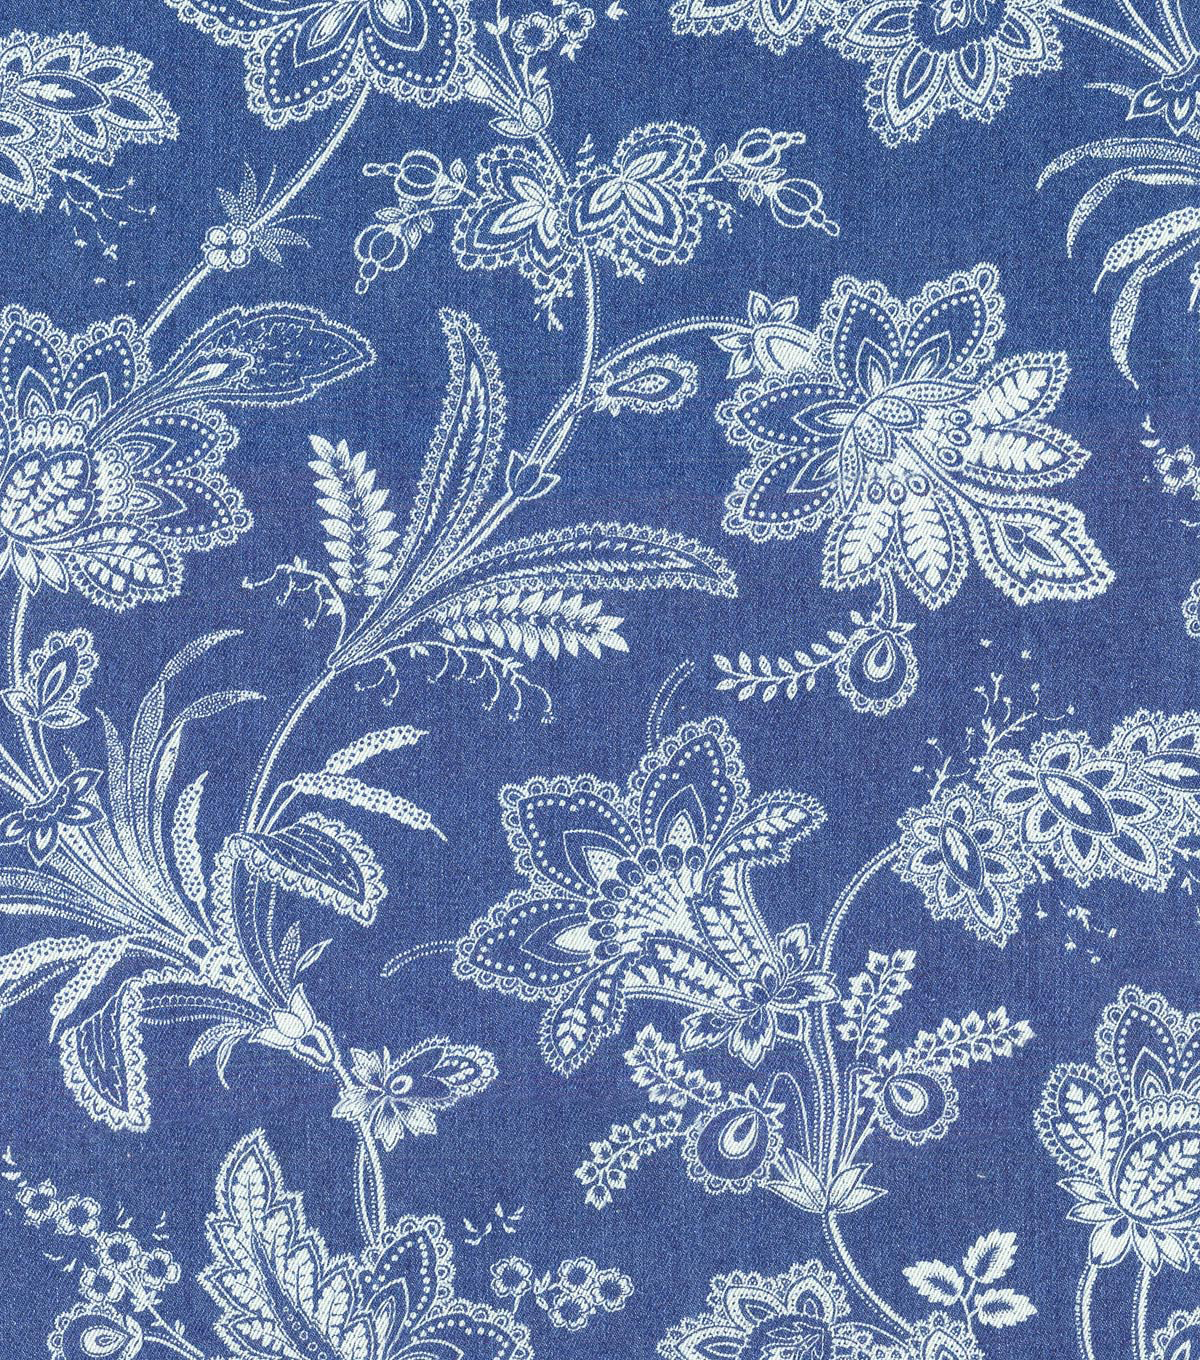 Waverly Upholstery Fabric-Follow the Trail Denim